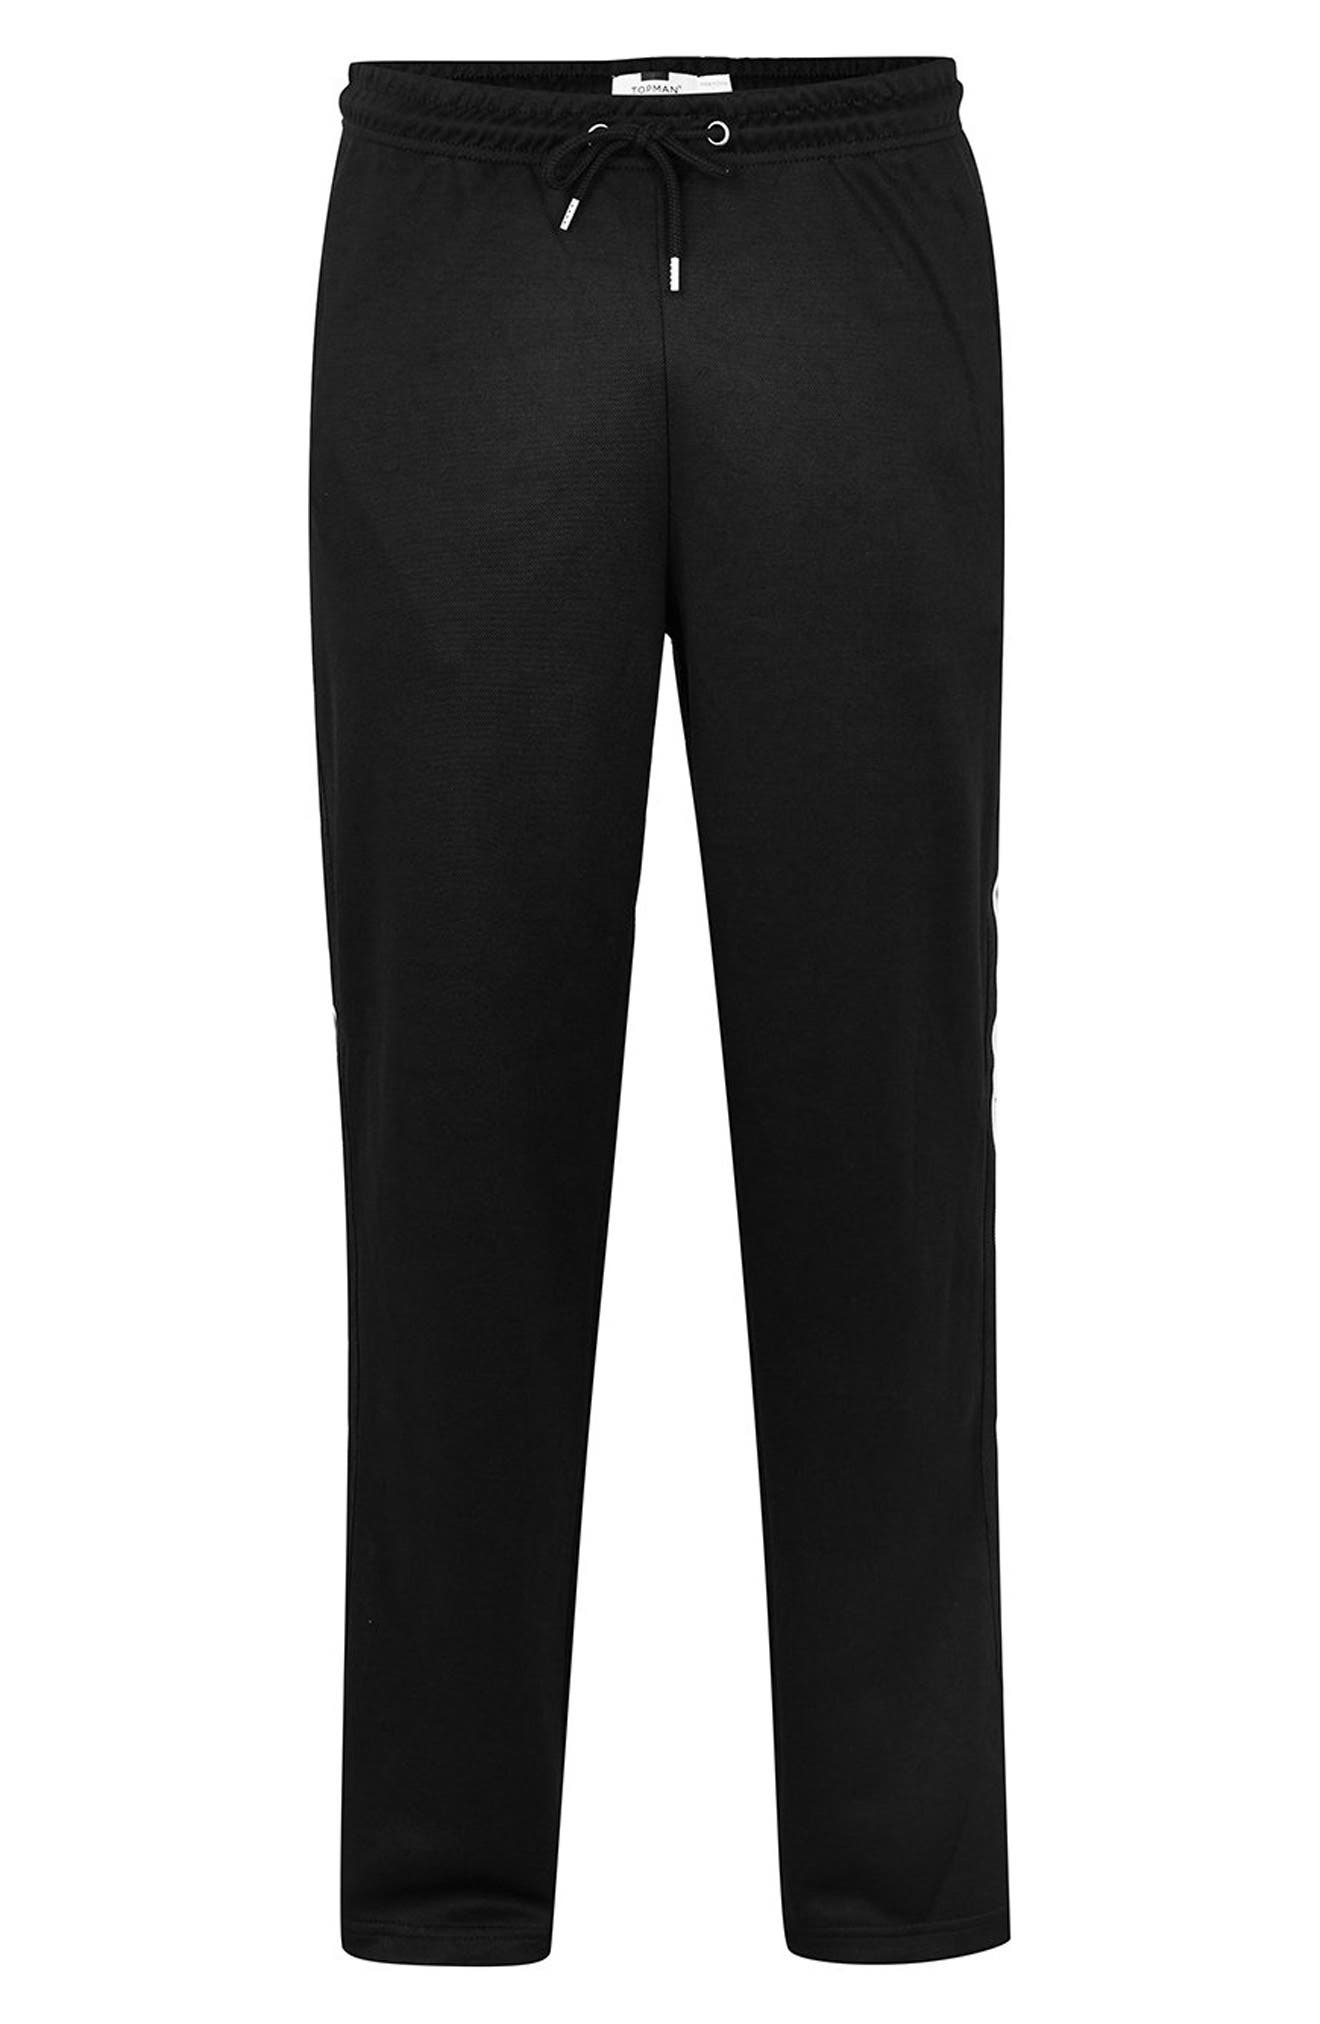 Classic Tricot Taped Jogger Pants,                             Alternate thumbnail 4, color,                             BLACK MULTI